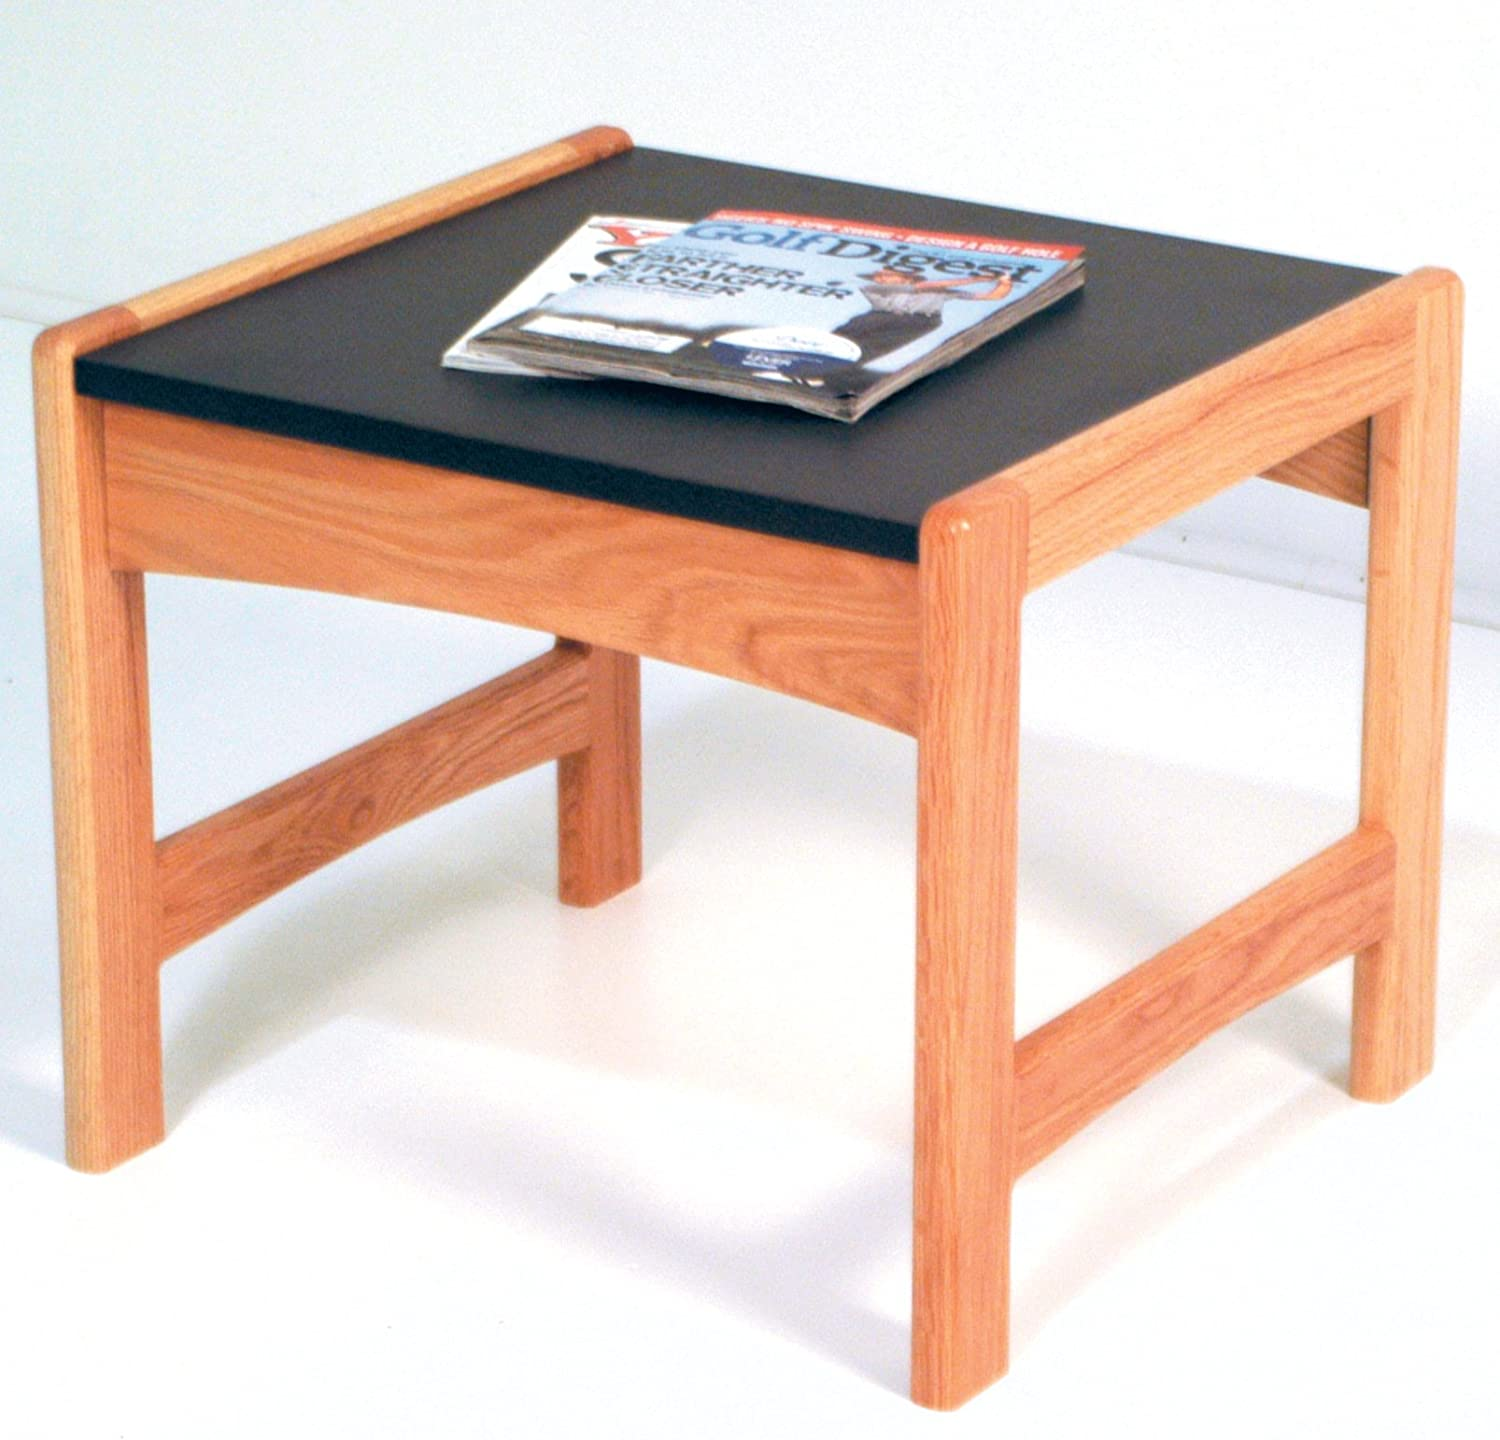 Wooden Mallet End Table with Black Granite Look Top, Light Oak